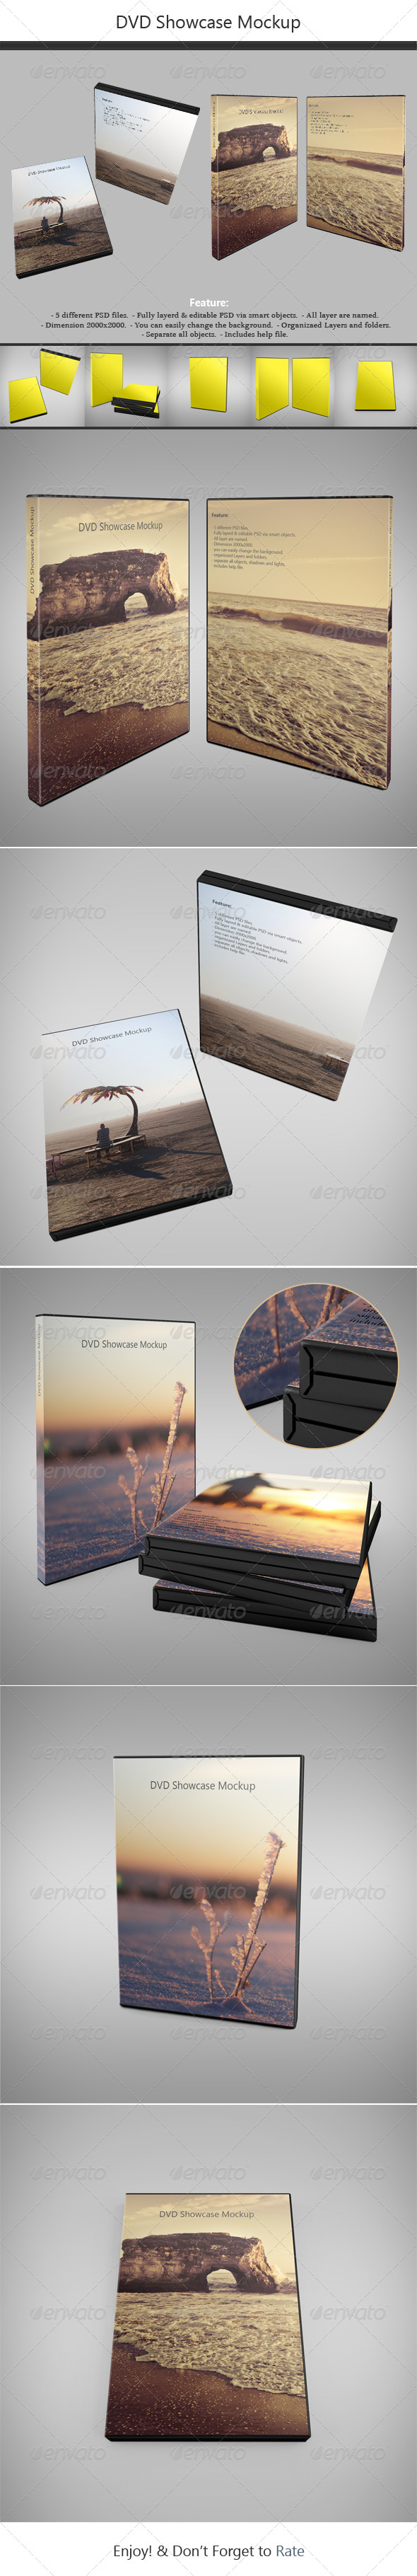 DVD Showcase Mock-up - Discs Packaging